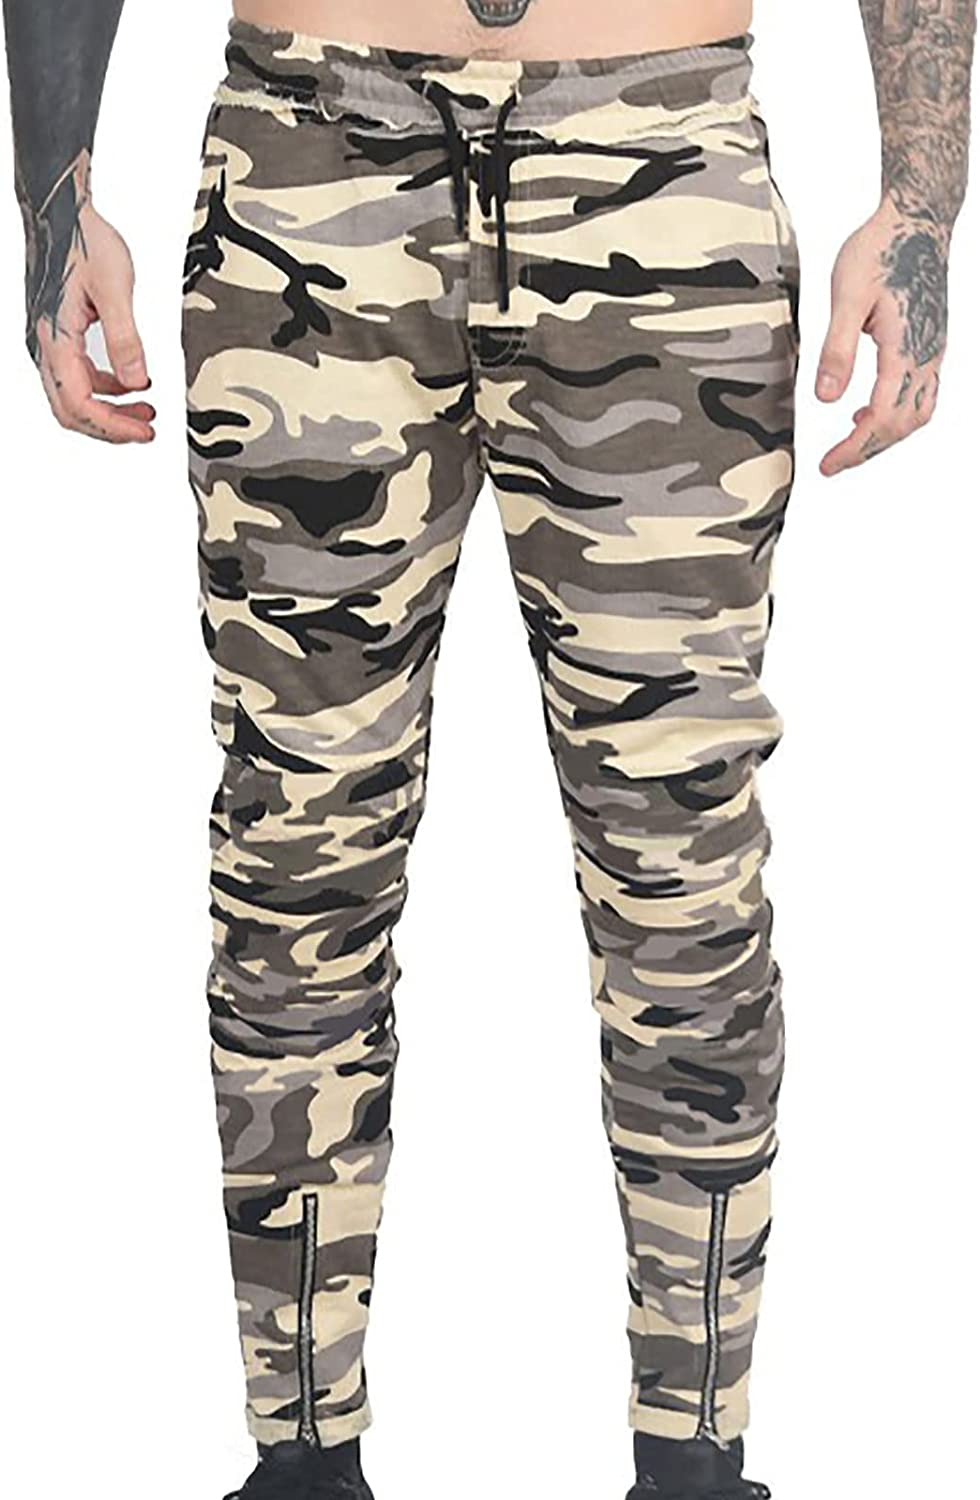 Sinzelimin Jogger Pants for Casual Sport Selling and selling Camouflage Men's Max 58% OFF